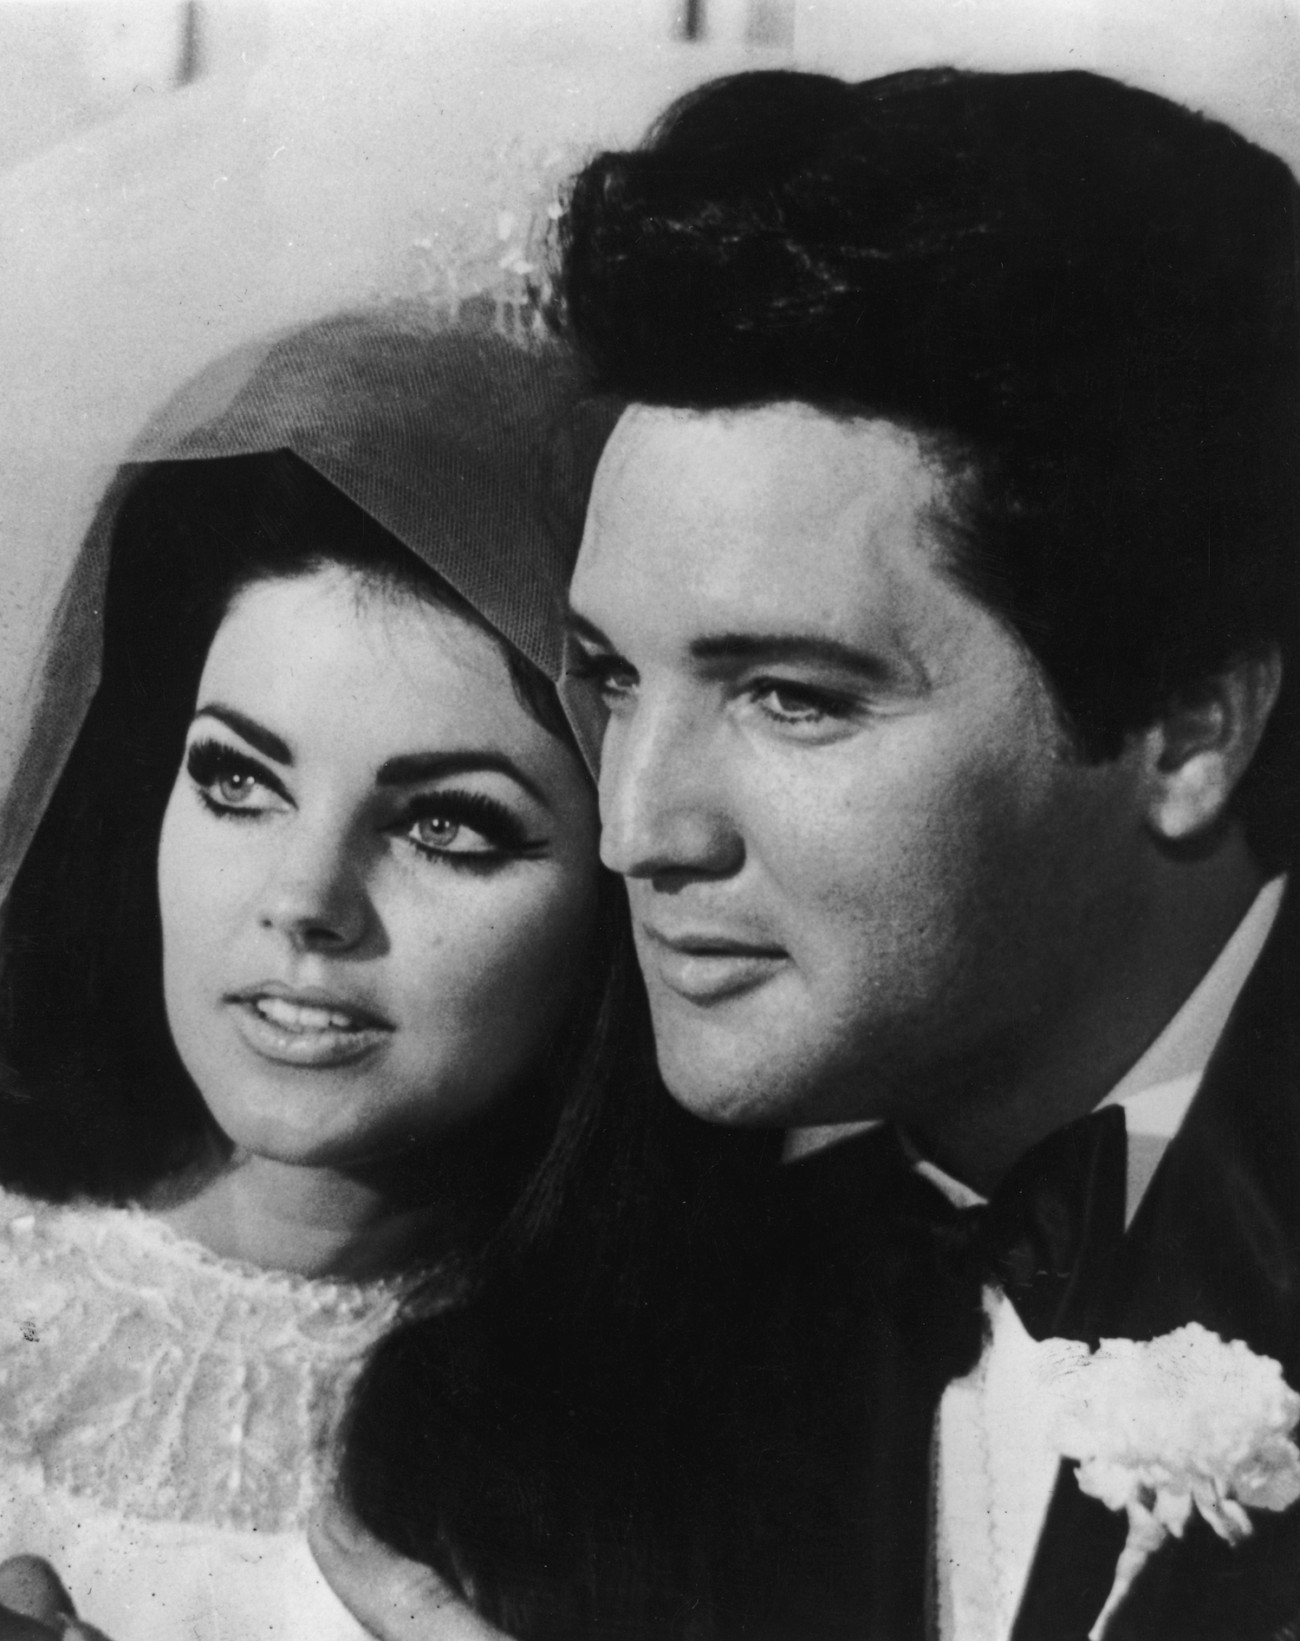 1st May 1967:  American rock n' roll singer and actor Elvis Presley (1935 - 1977) with his bride Priscilla Beaulieu after their wedding in Las Vegas.  (Photo by Keystone/Getty Images)